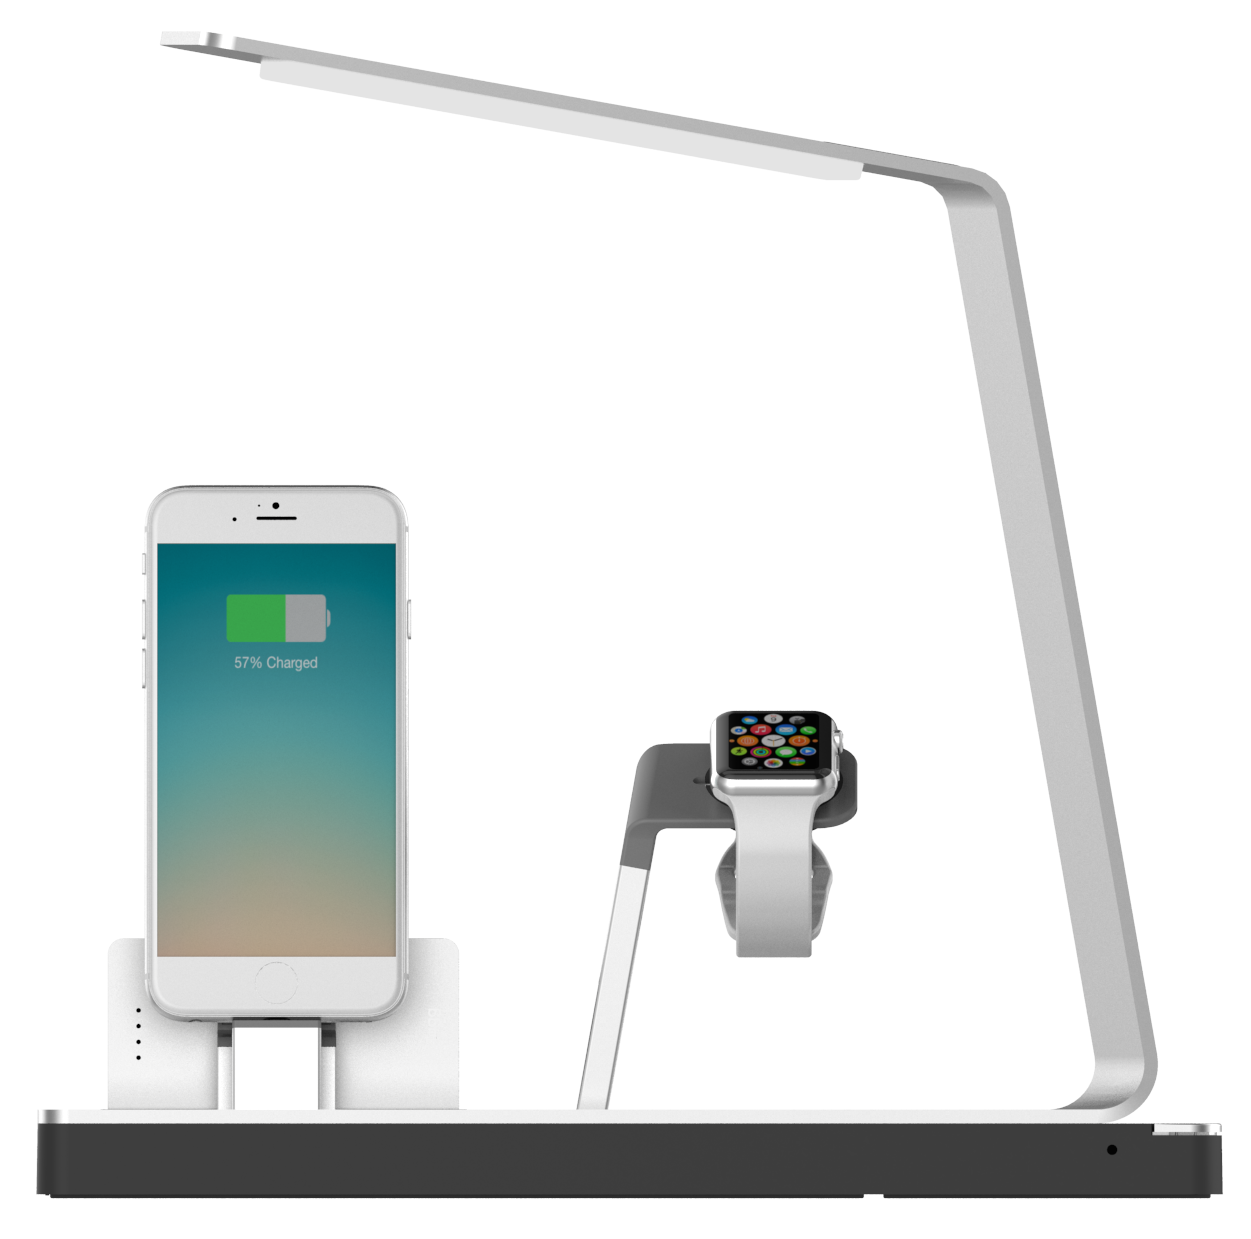 Elegantly Designed Iphone Amp Amp Apple Watch Power Dock With Smart Led Lamp Optional Nuki Portable Bat Apple Watch Charging Stand Lamp Apple Watch Charging